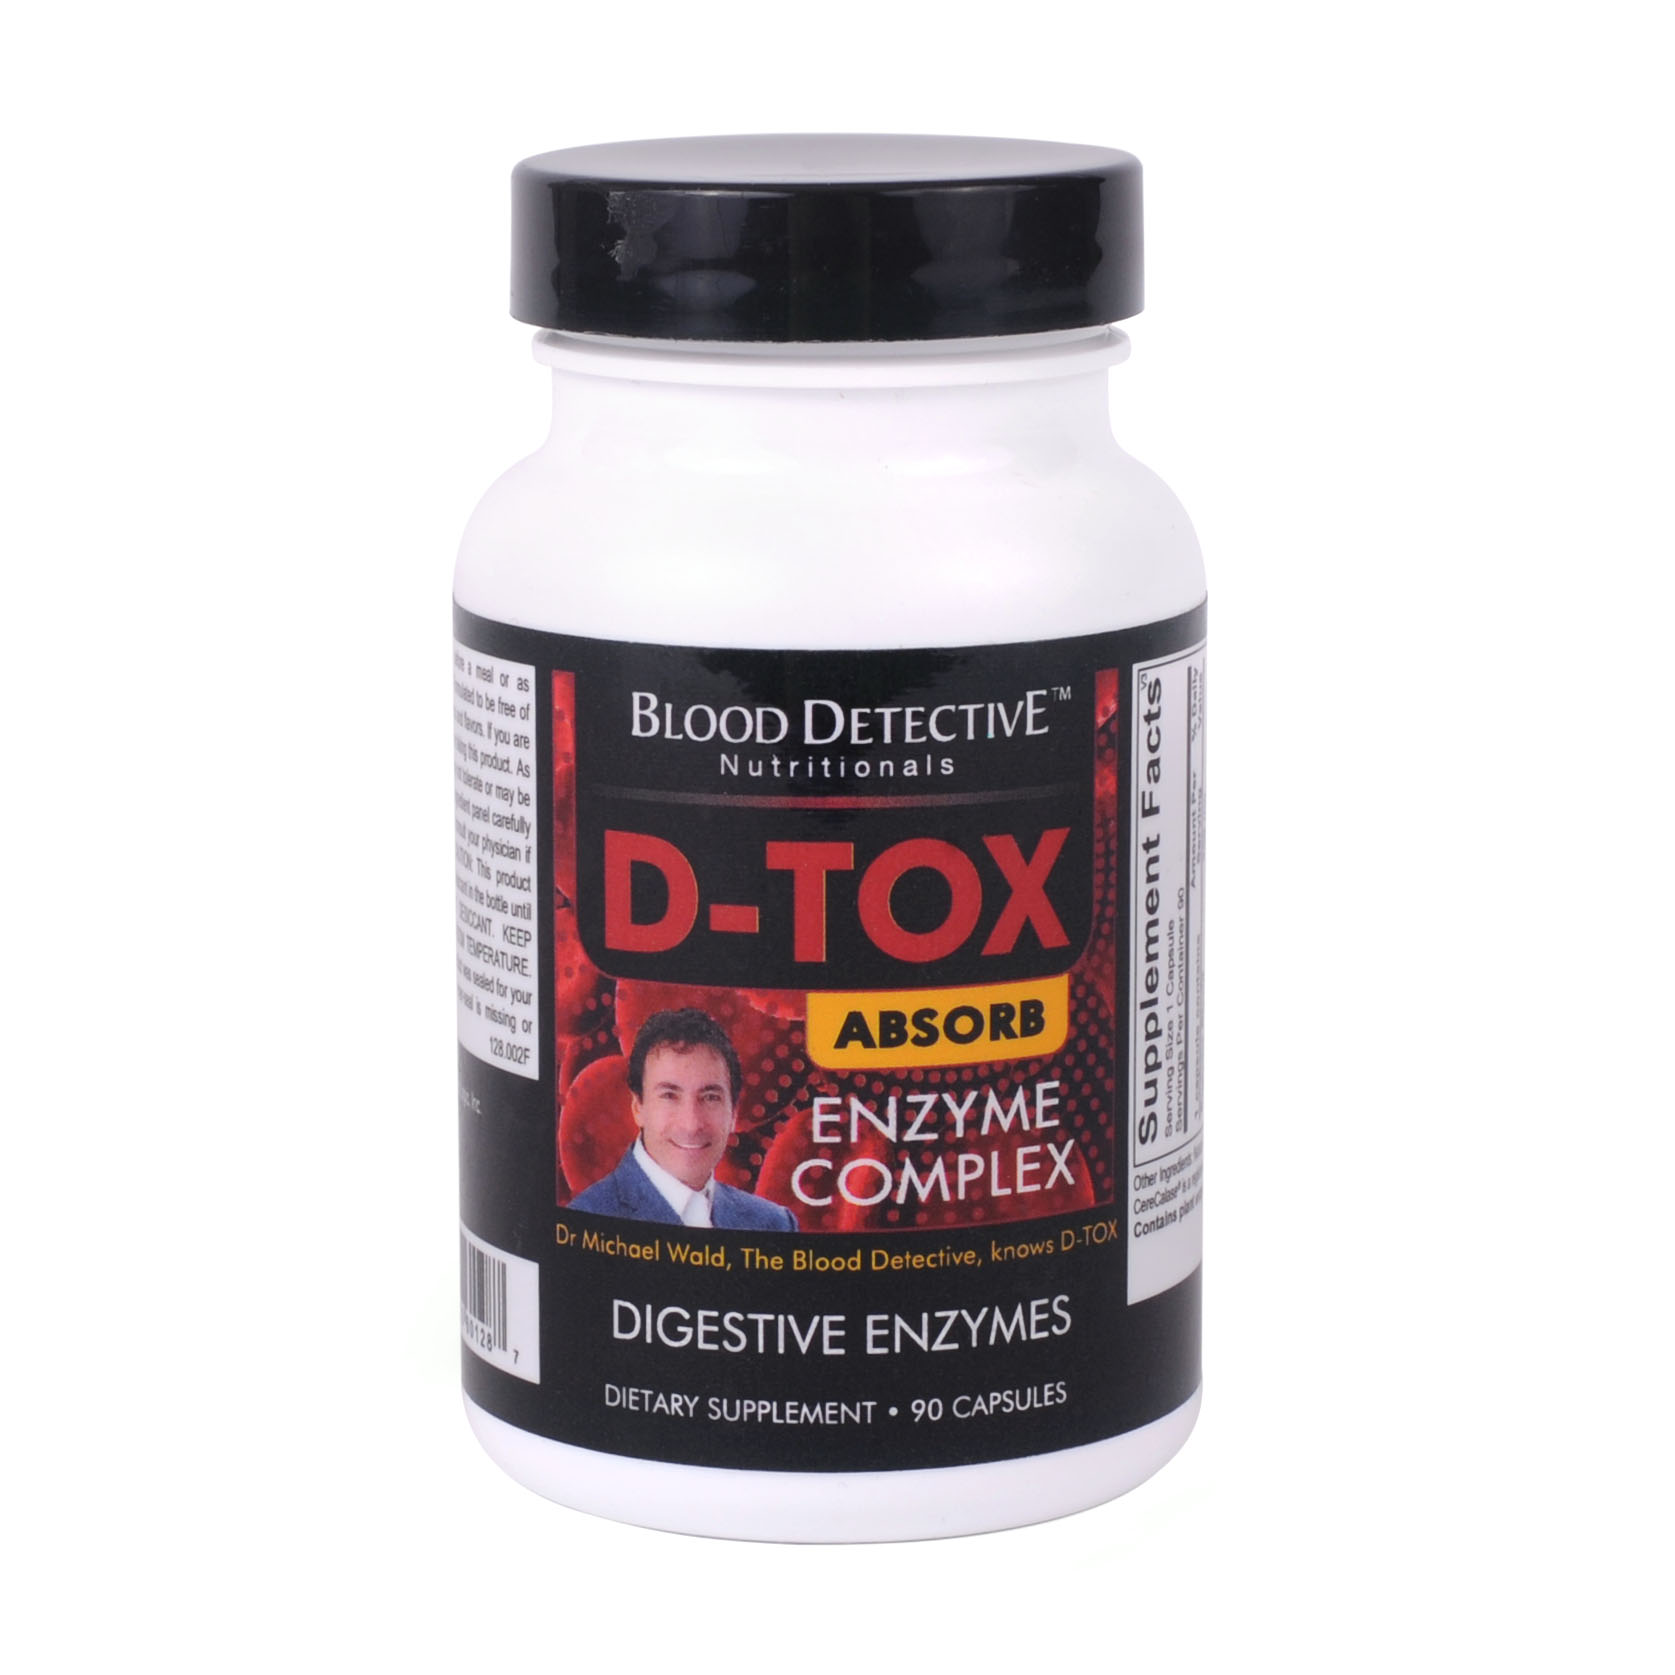 d-tox absorb enzyme complex digestive enzymes